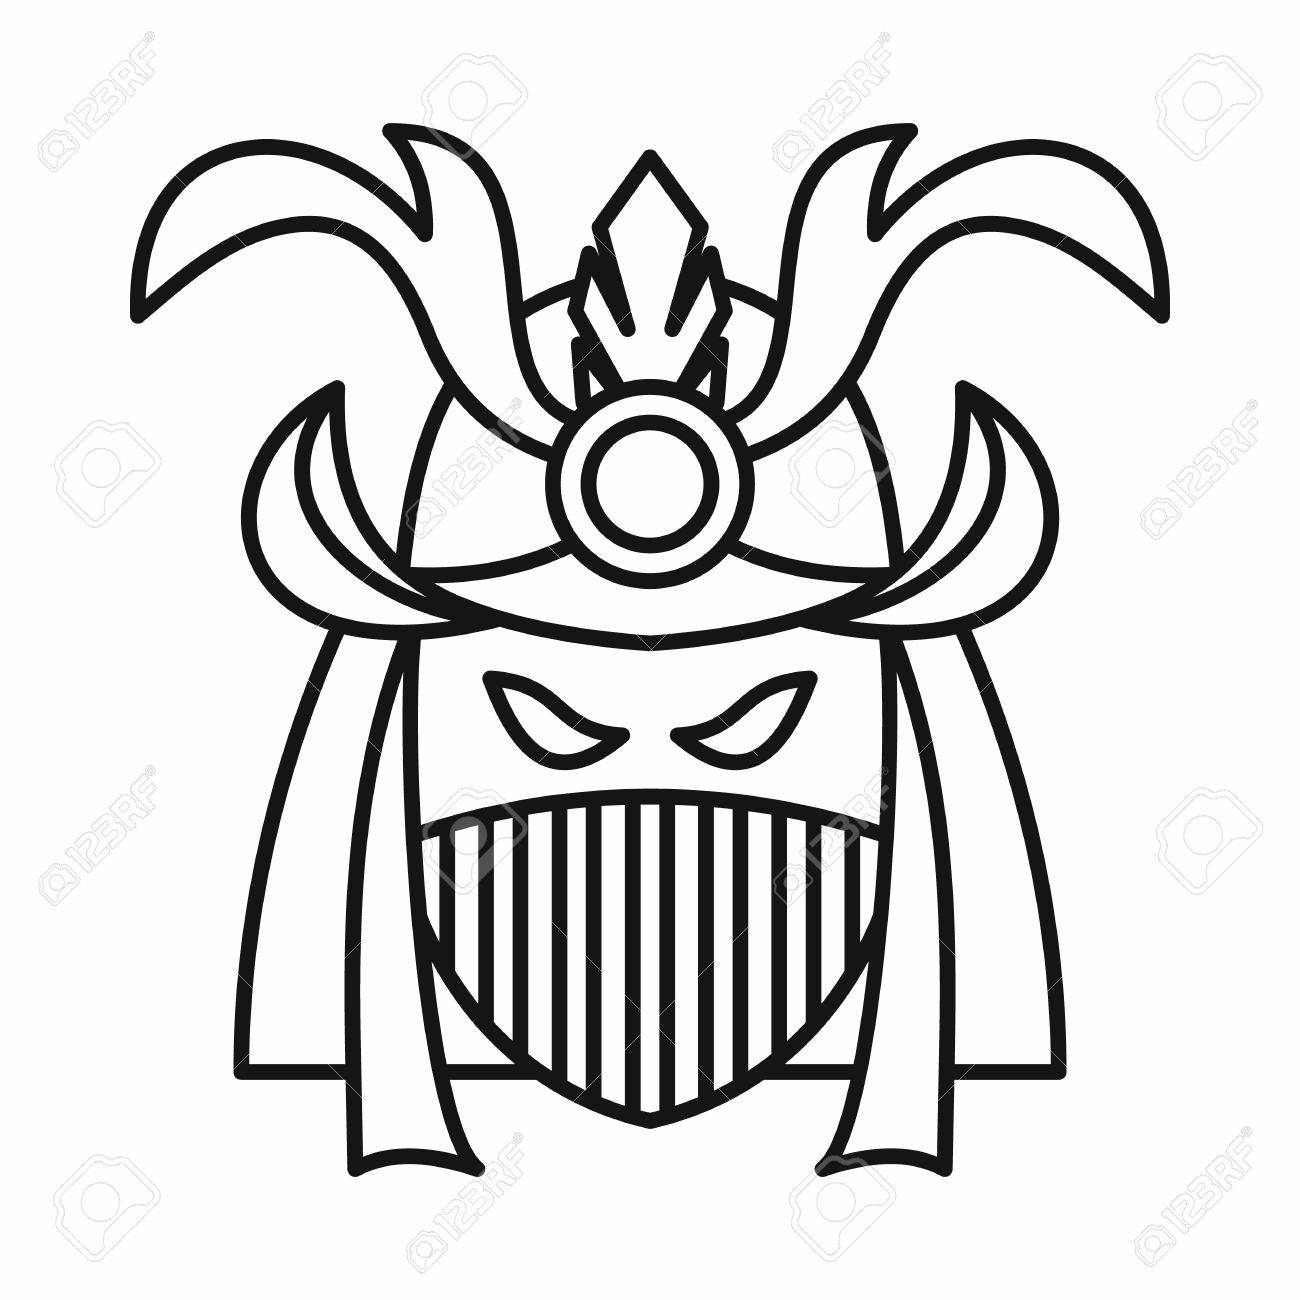 Japanese Samurai Mask Icon In Outline Style Isolated On White Background  Vector Illustration Stock Vector